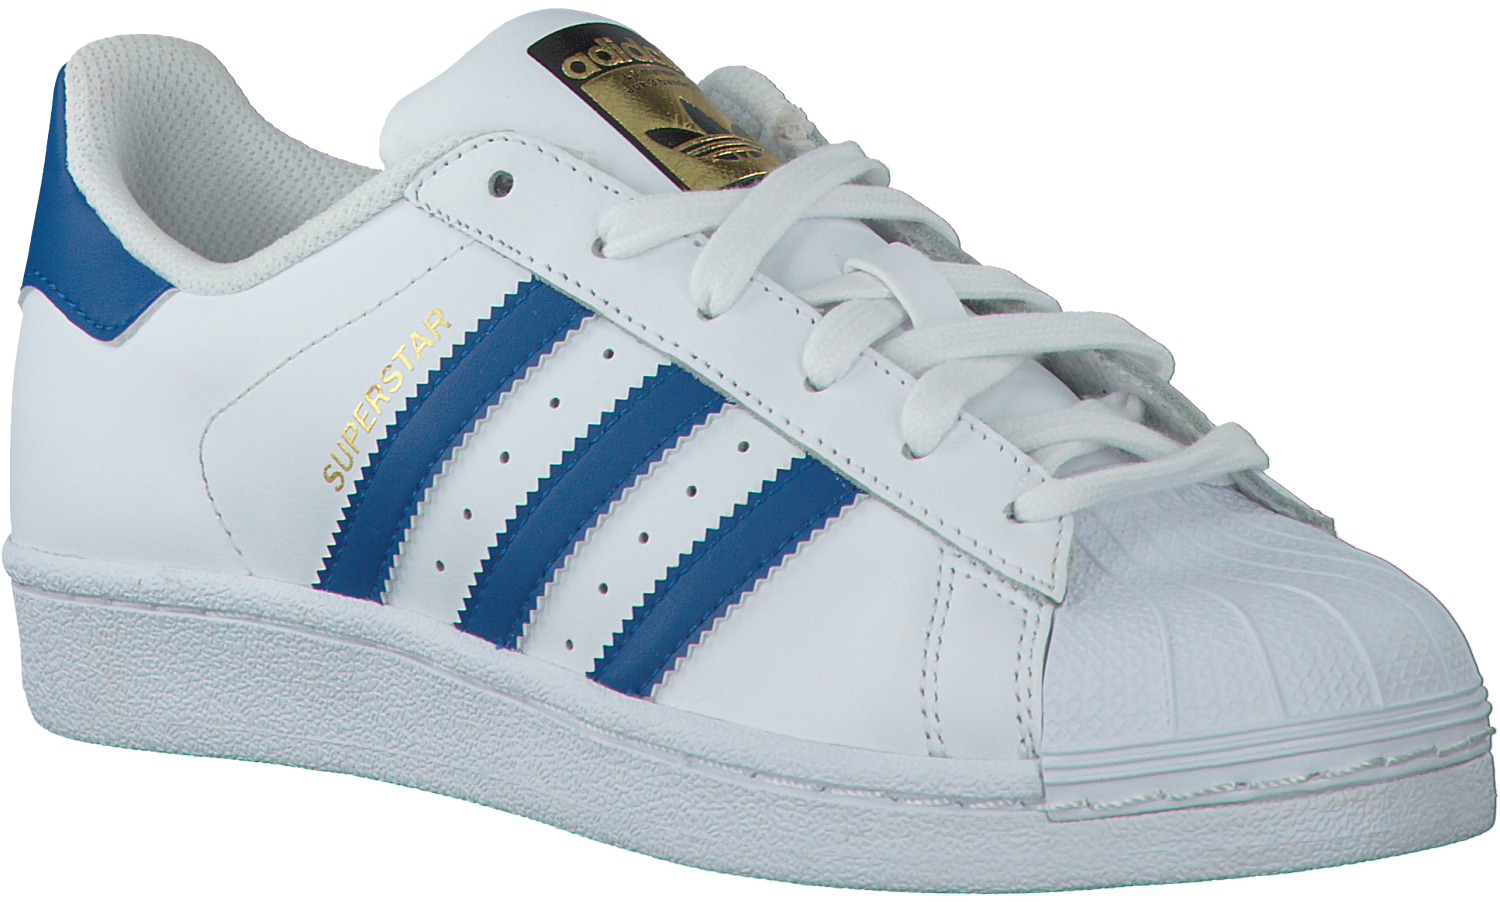 76767a8a84b Witte ADIDAS Sneakers SUPERSTAR KIDS - Omoda.nl